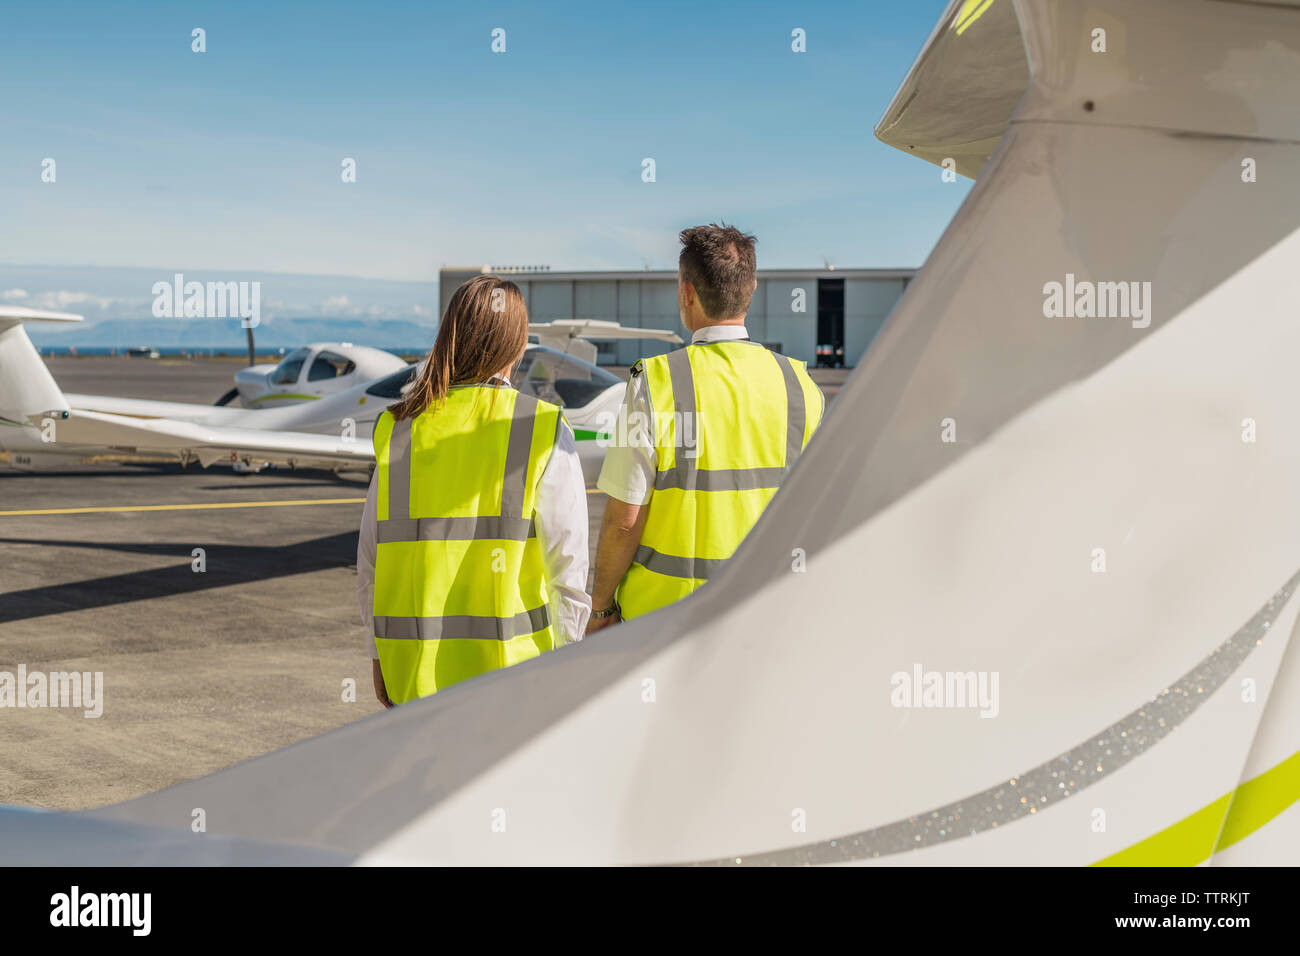 Rear view of engineers wearing reflective clothing standing against blue sky at airport runway - Stock Image